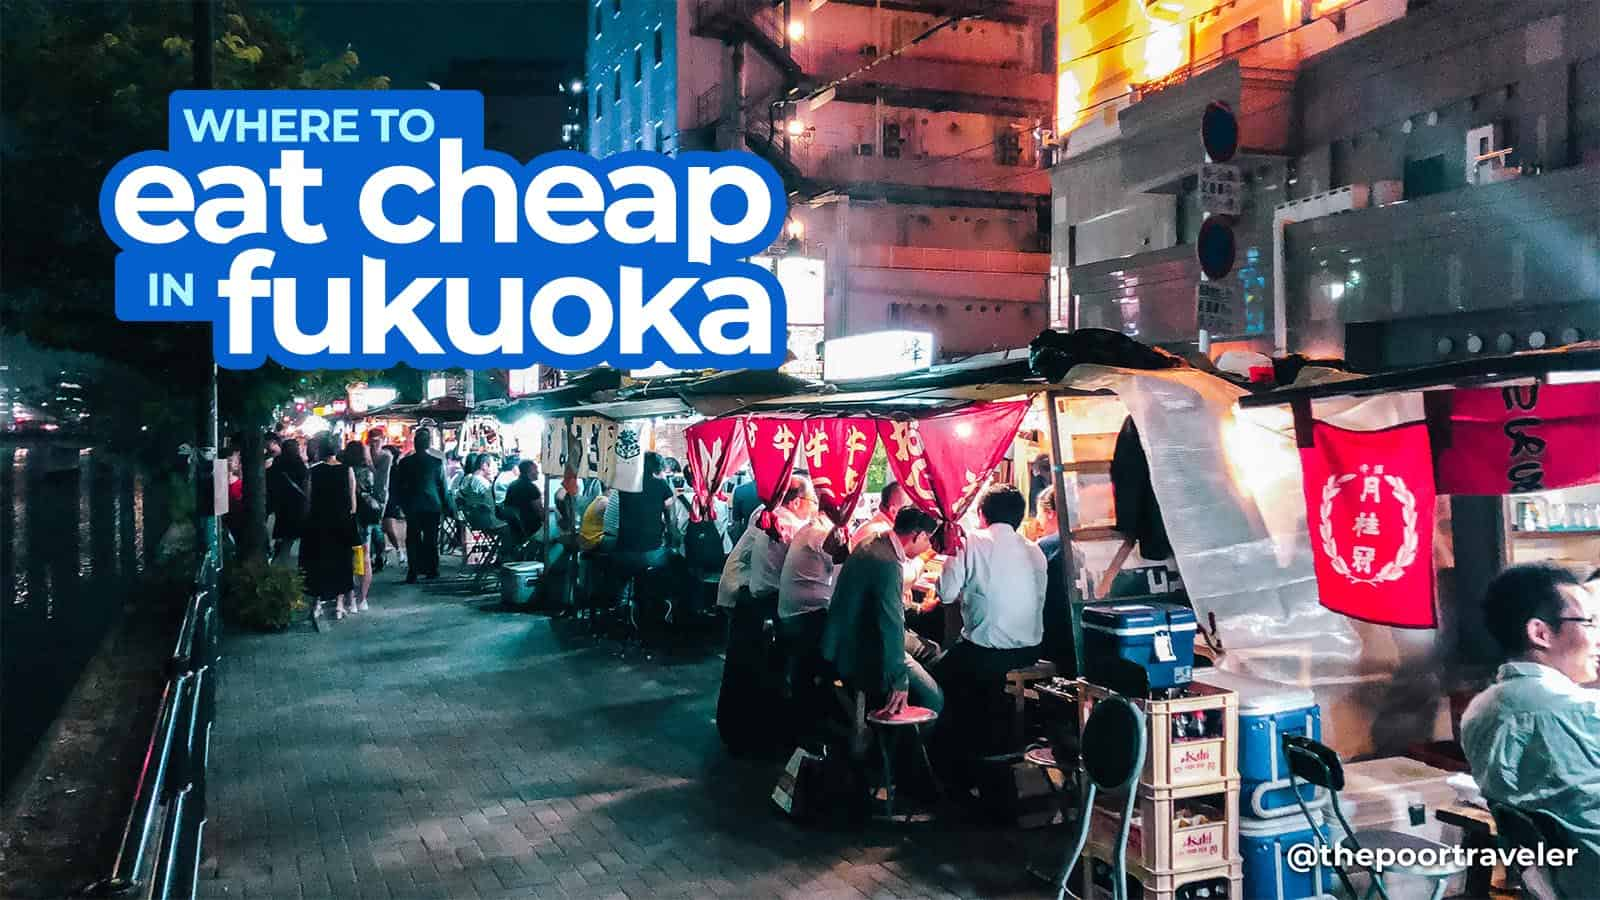 WHERE TO EAT CHEAP IN FUKUOKA